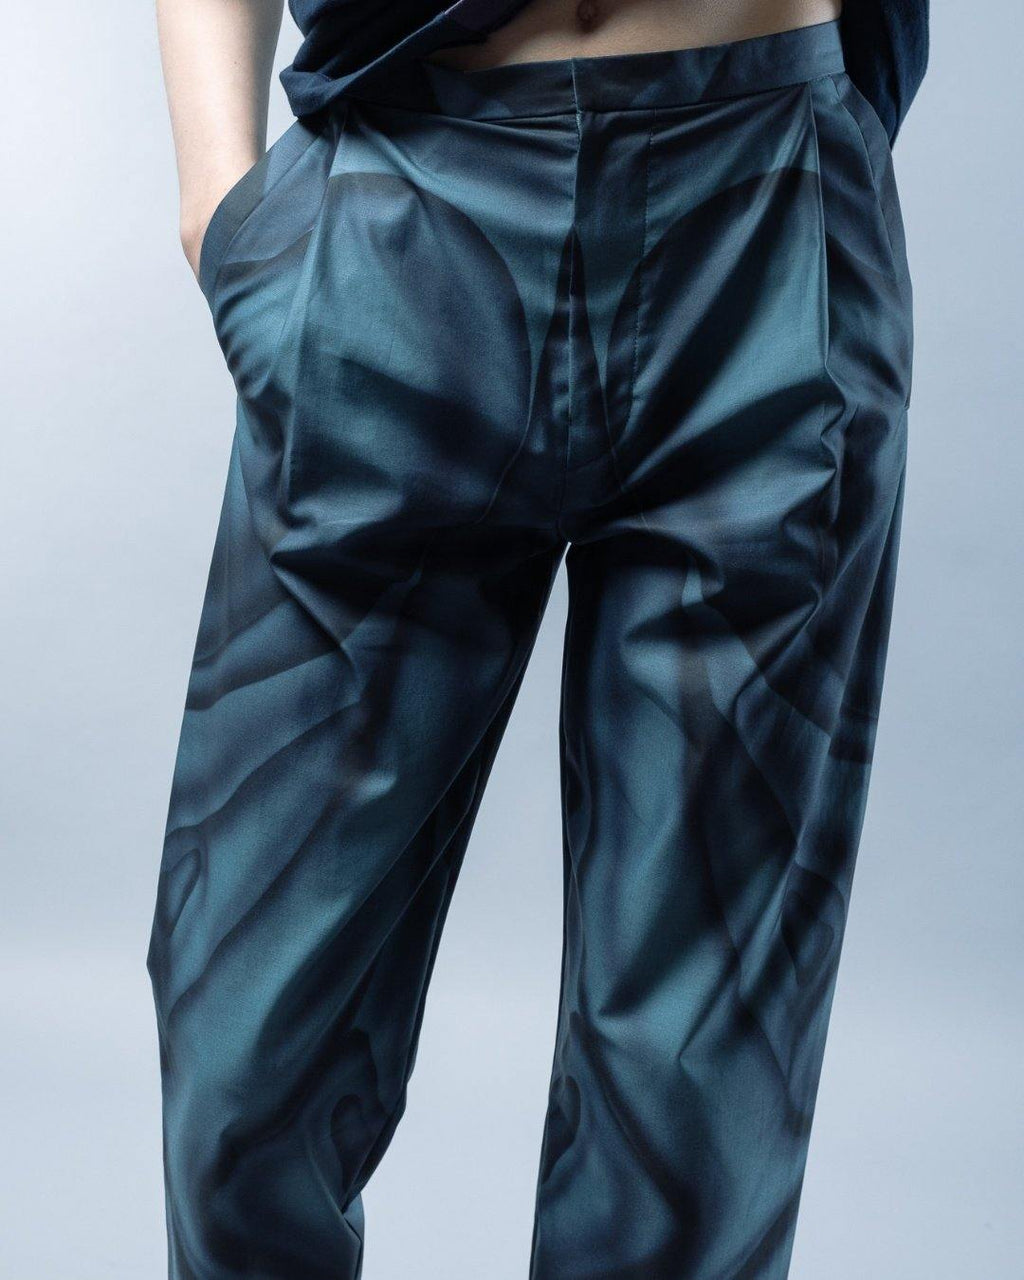 HANA FRISONSOVA - men's pants